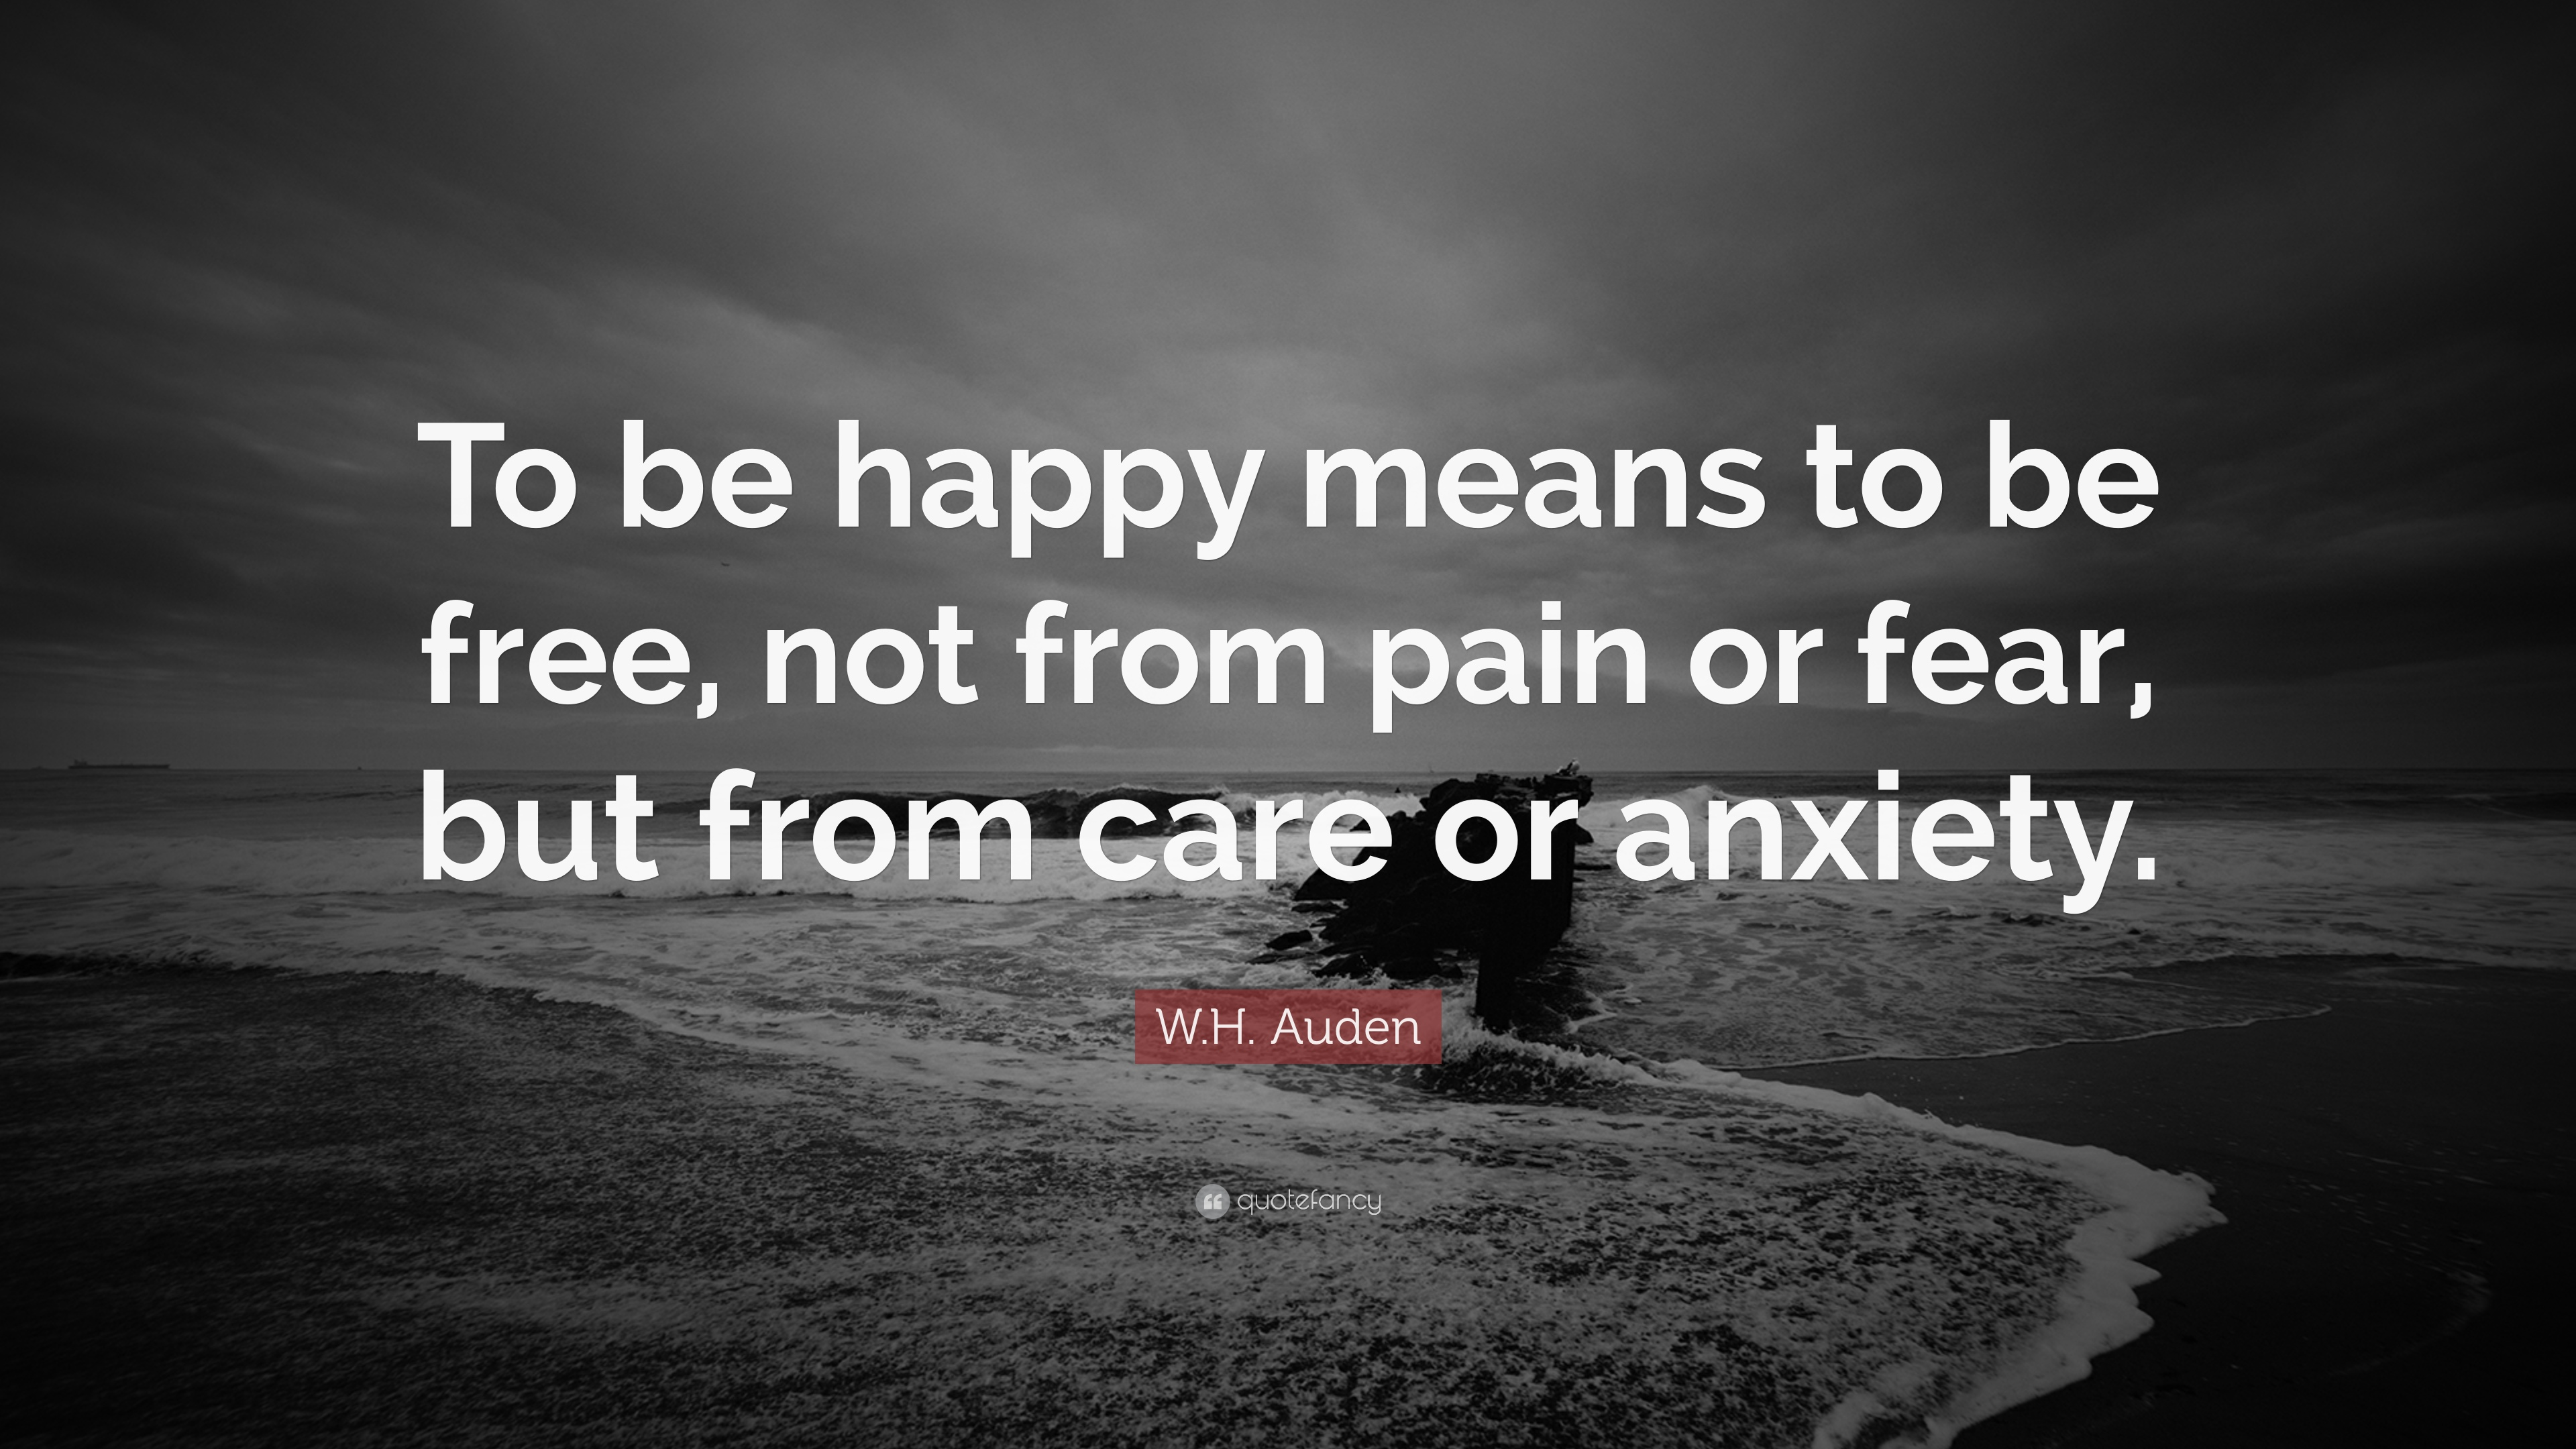 Wh Auden Quote To Be Happy Means To Be Free Not From Pain Or